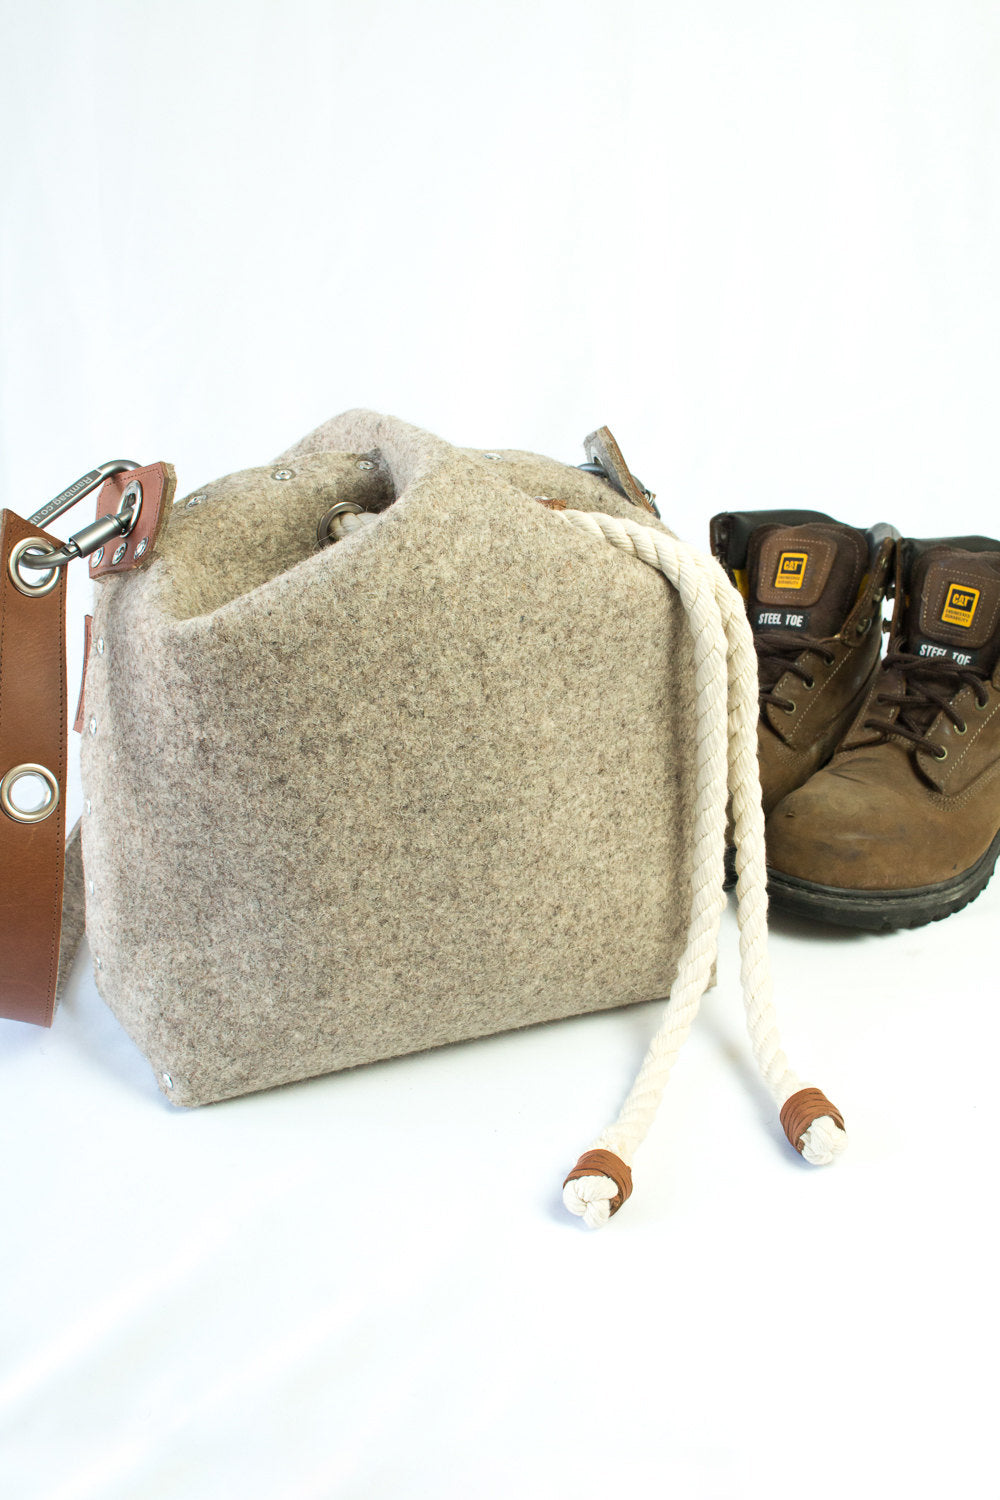 Overnight bag, Felt Large Bag, Felt Messenger Bag, Across The Shoulder Bag, Large Bag, Unisex Satchel, Duffle Bag, Bucket Bag